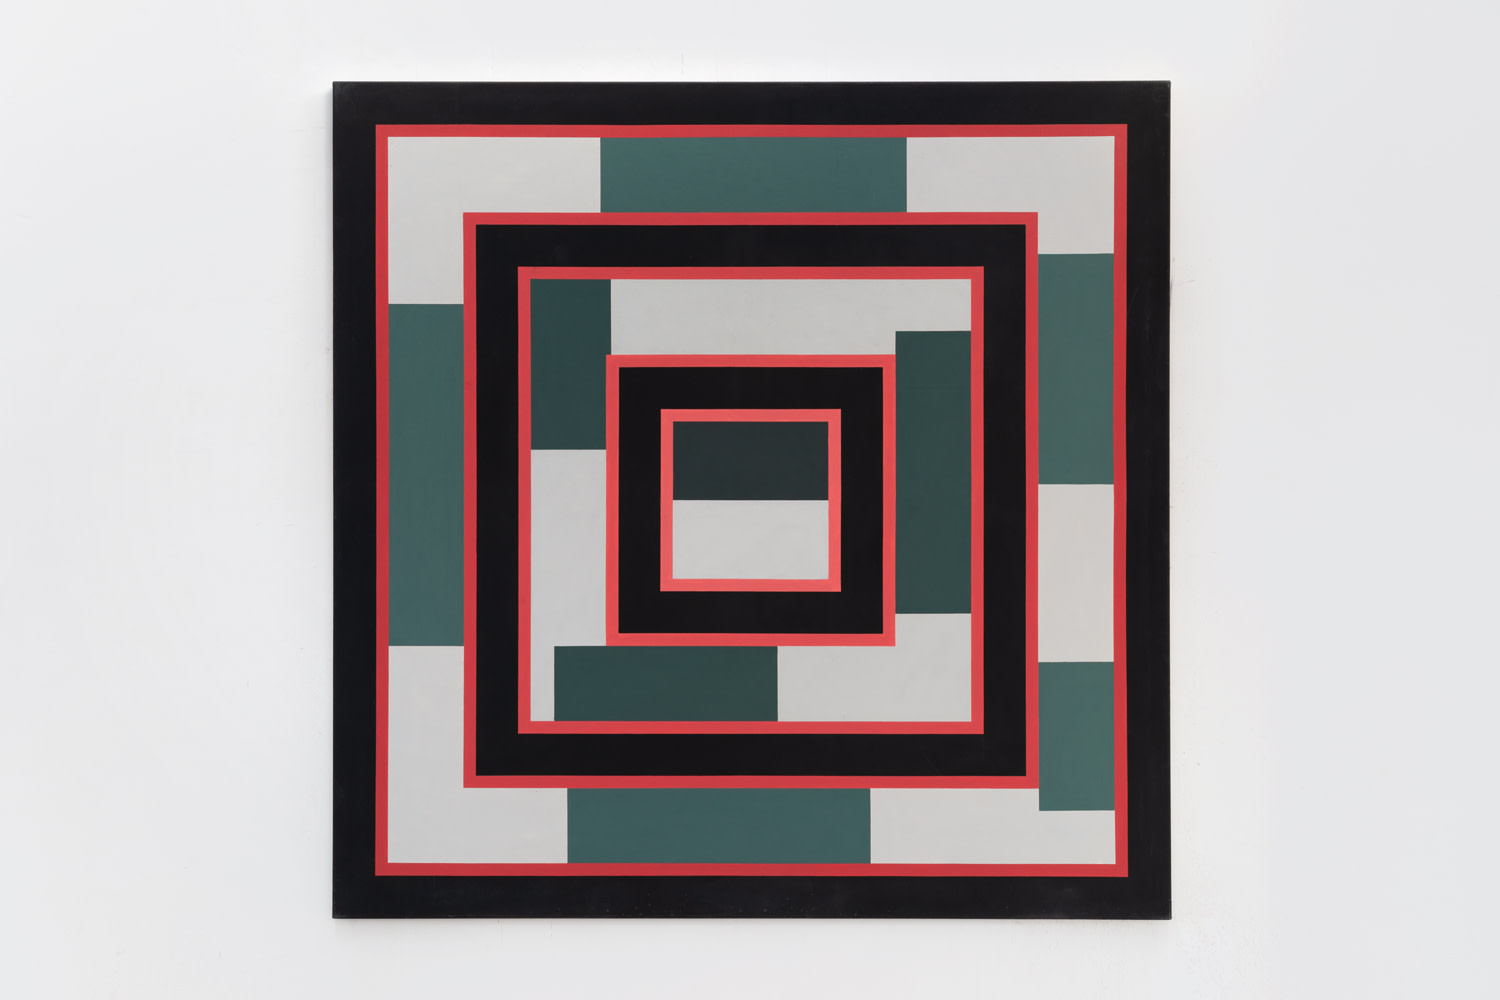 Red & Green I, 1973